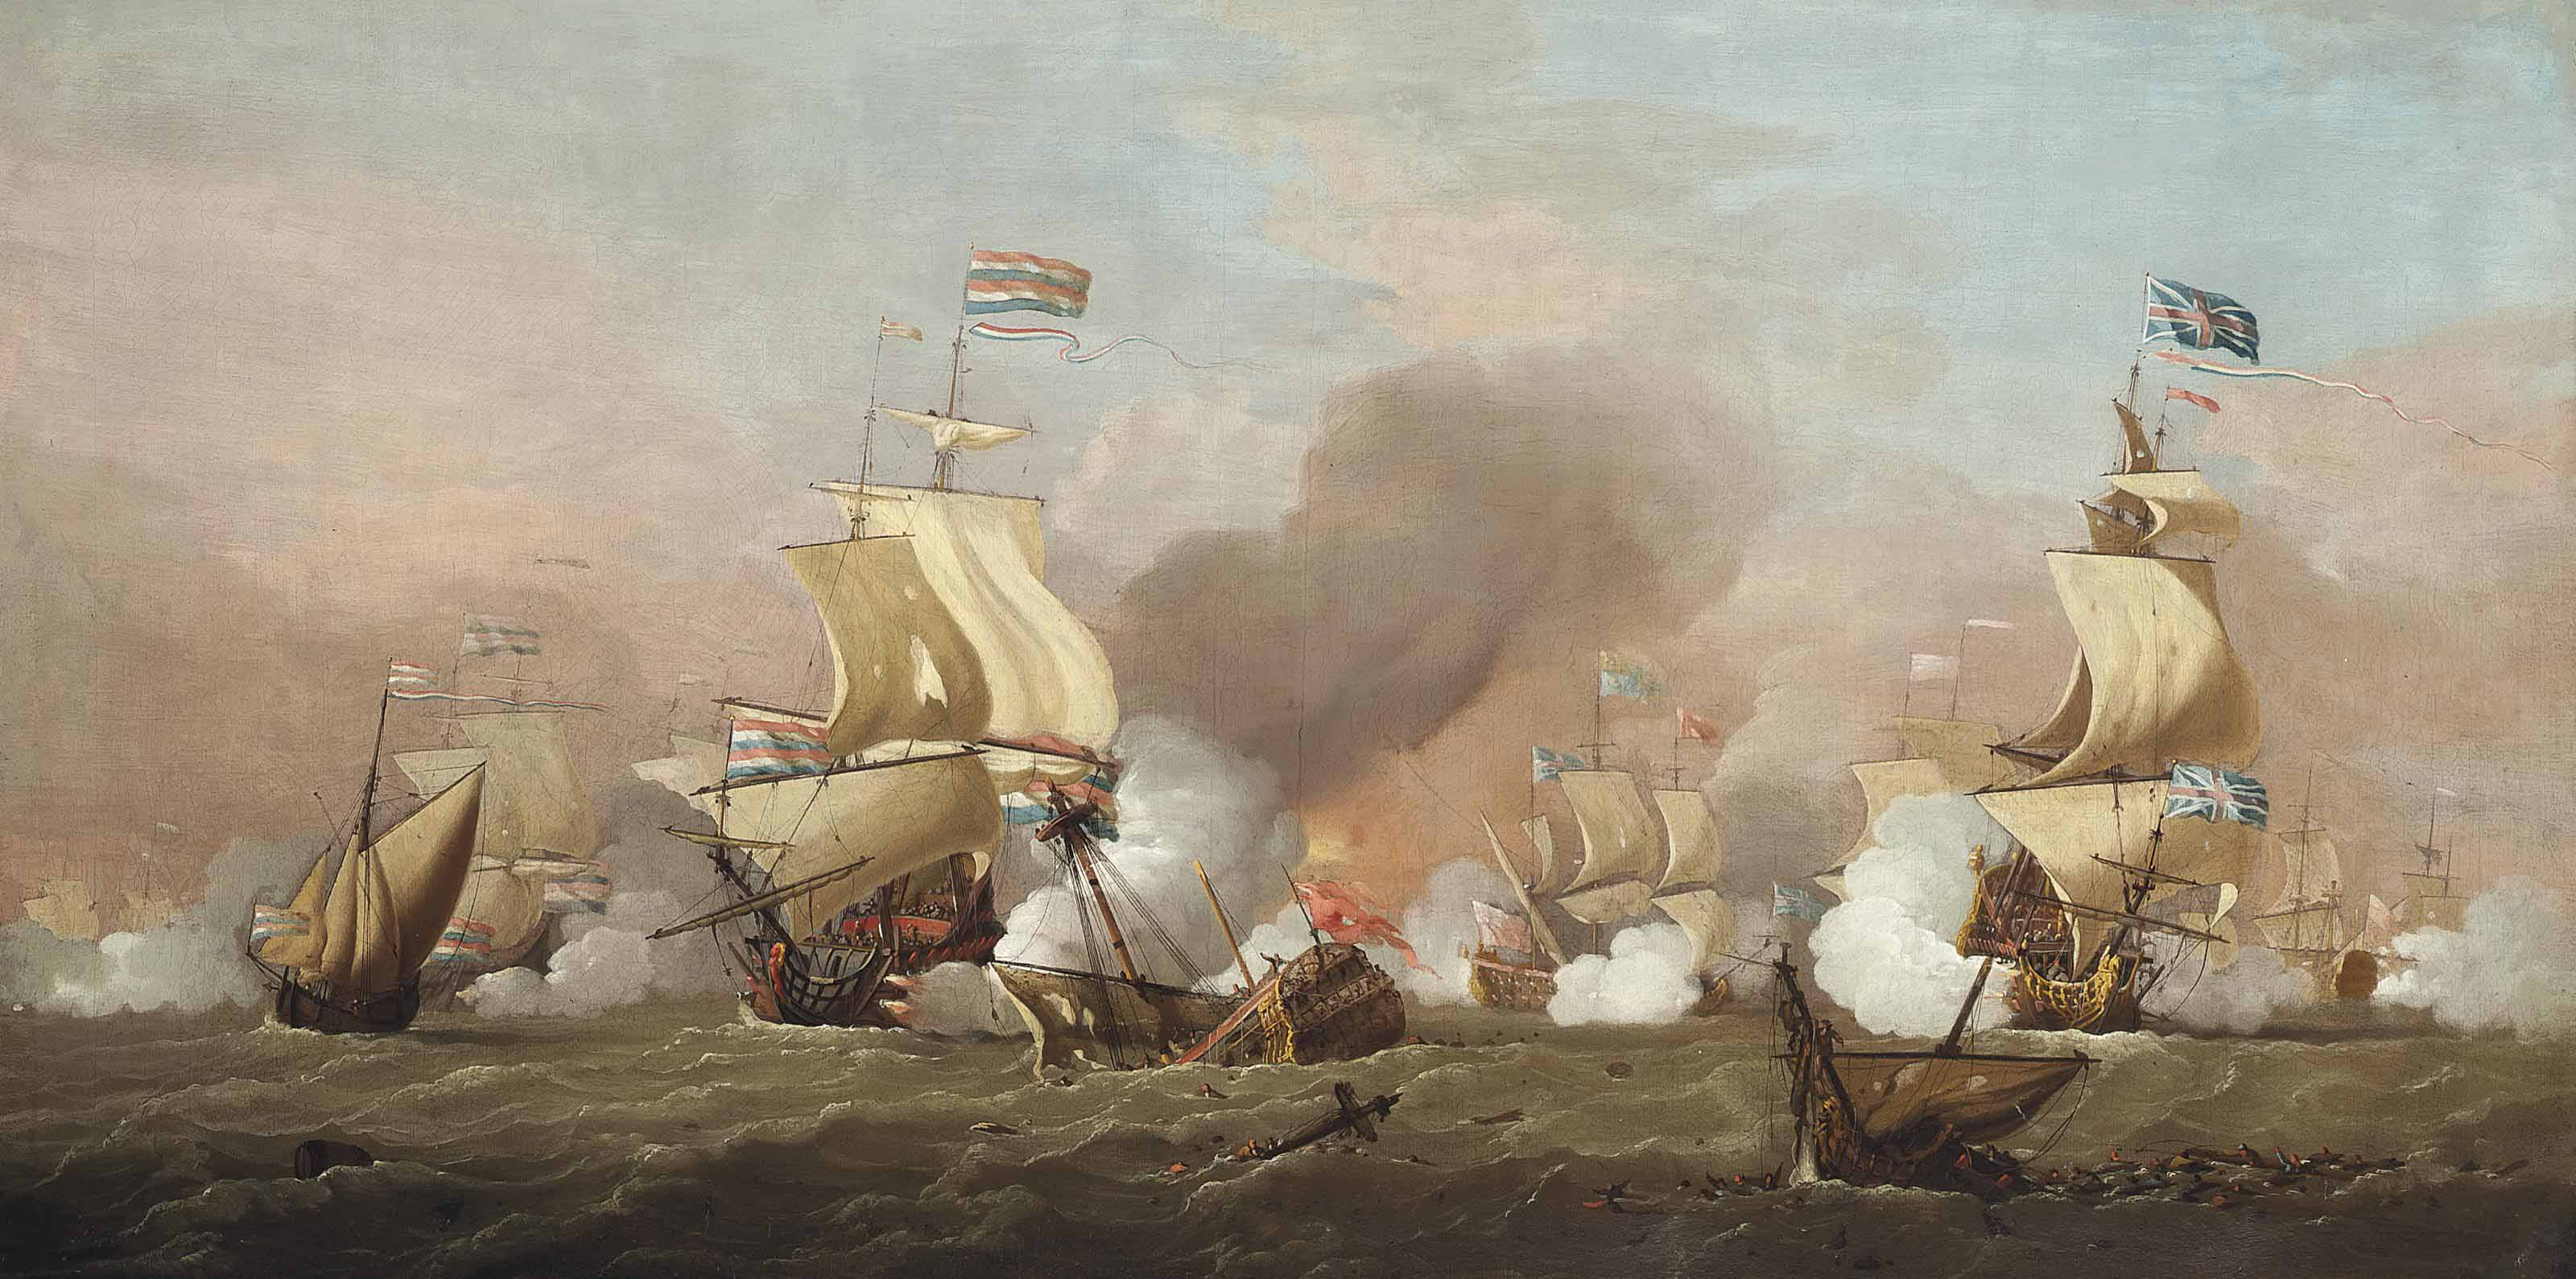 The battle of Texel, 11th August 1673: Two large First Rates, English and Dutch, engaged in a fierce broadside duel, with H.R.H. Prince Rupert's flagship Royal Sovereign in action astern of them